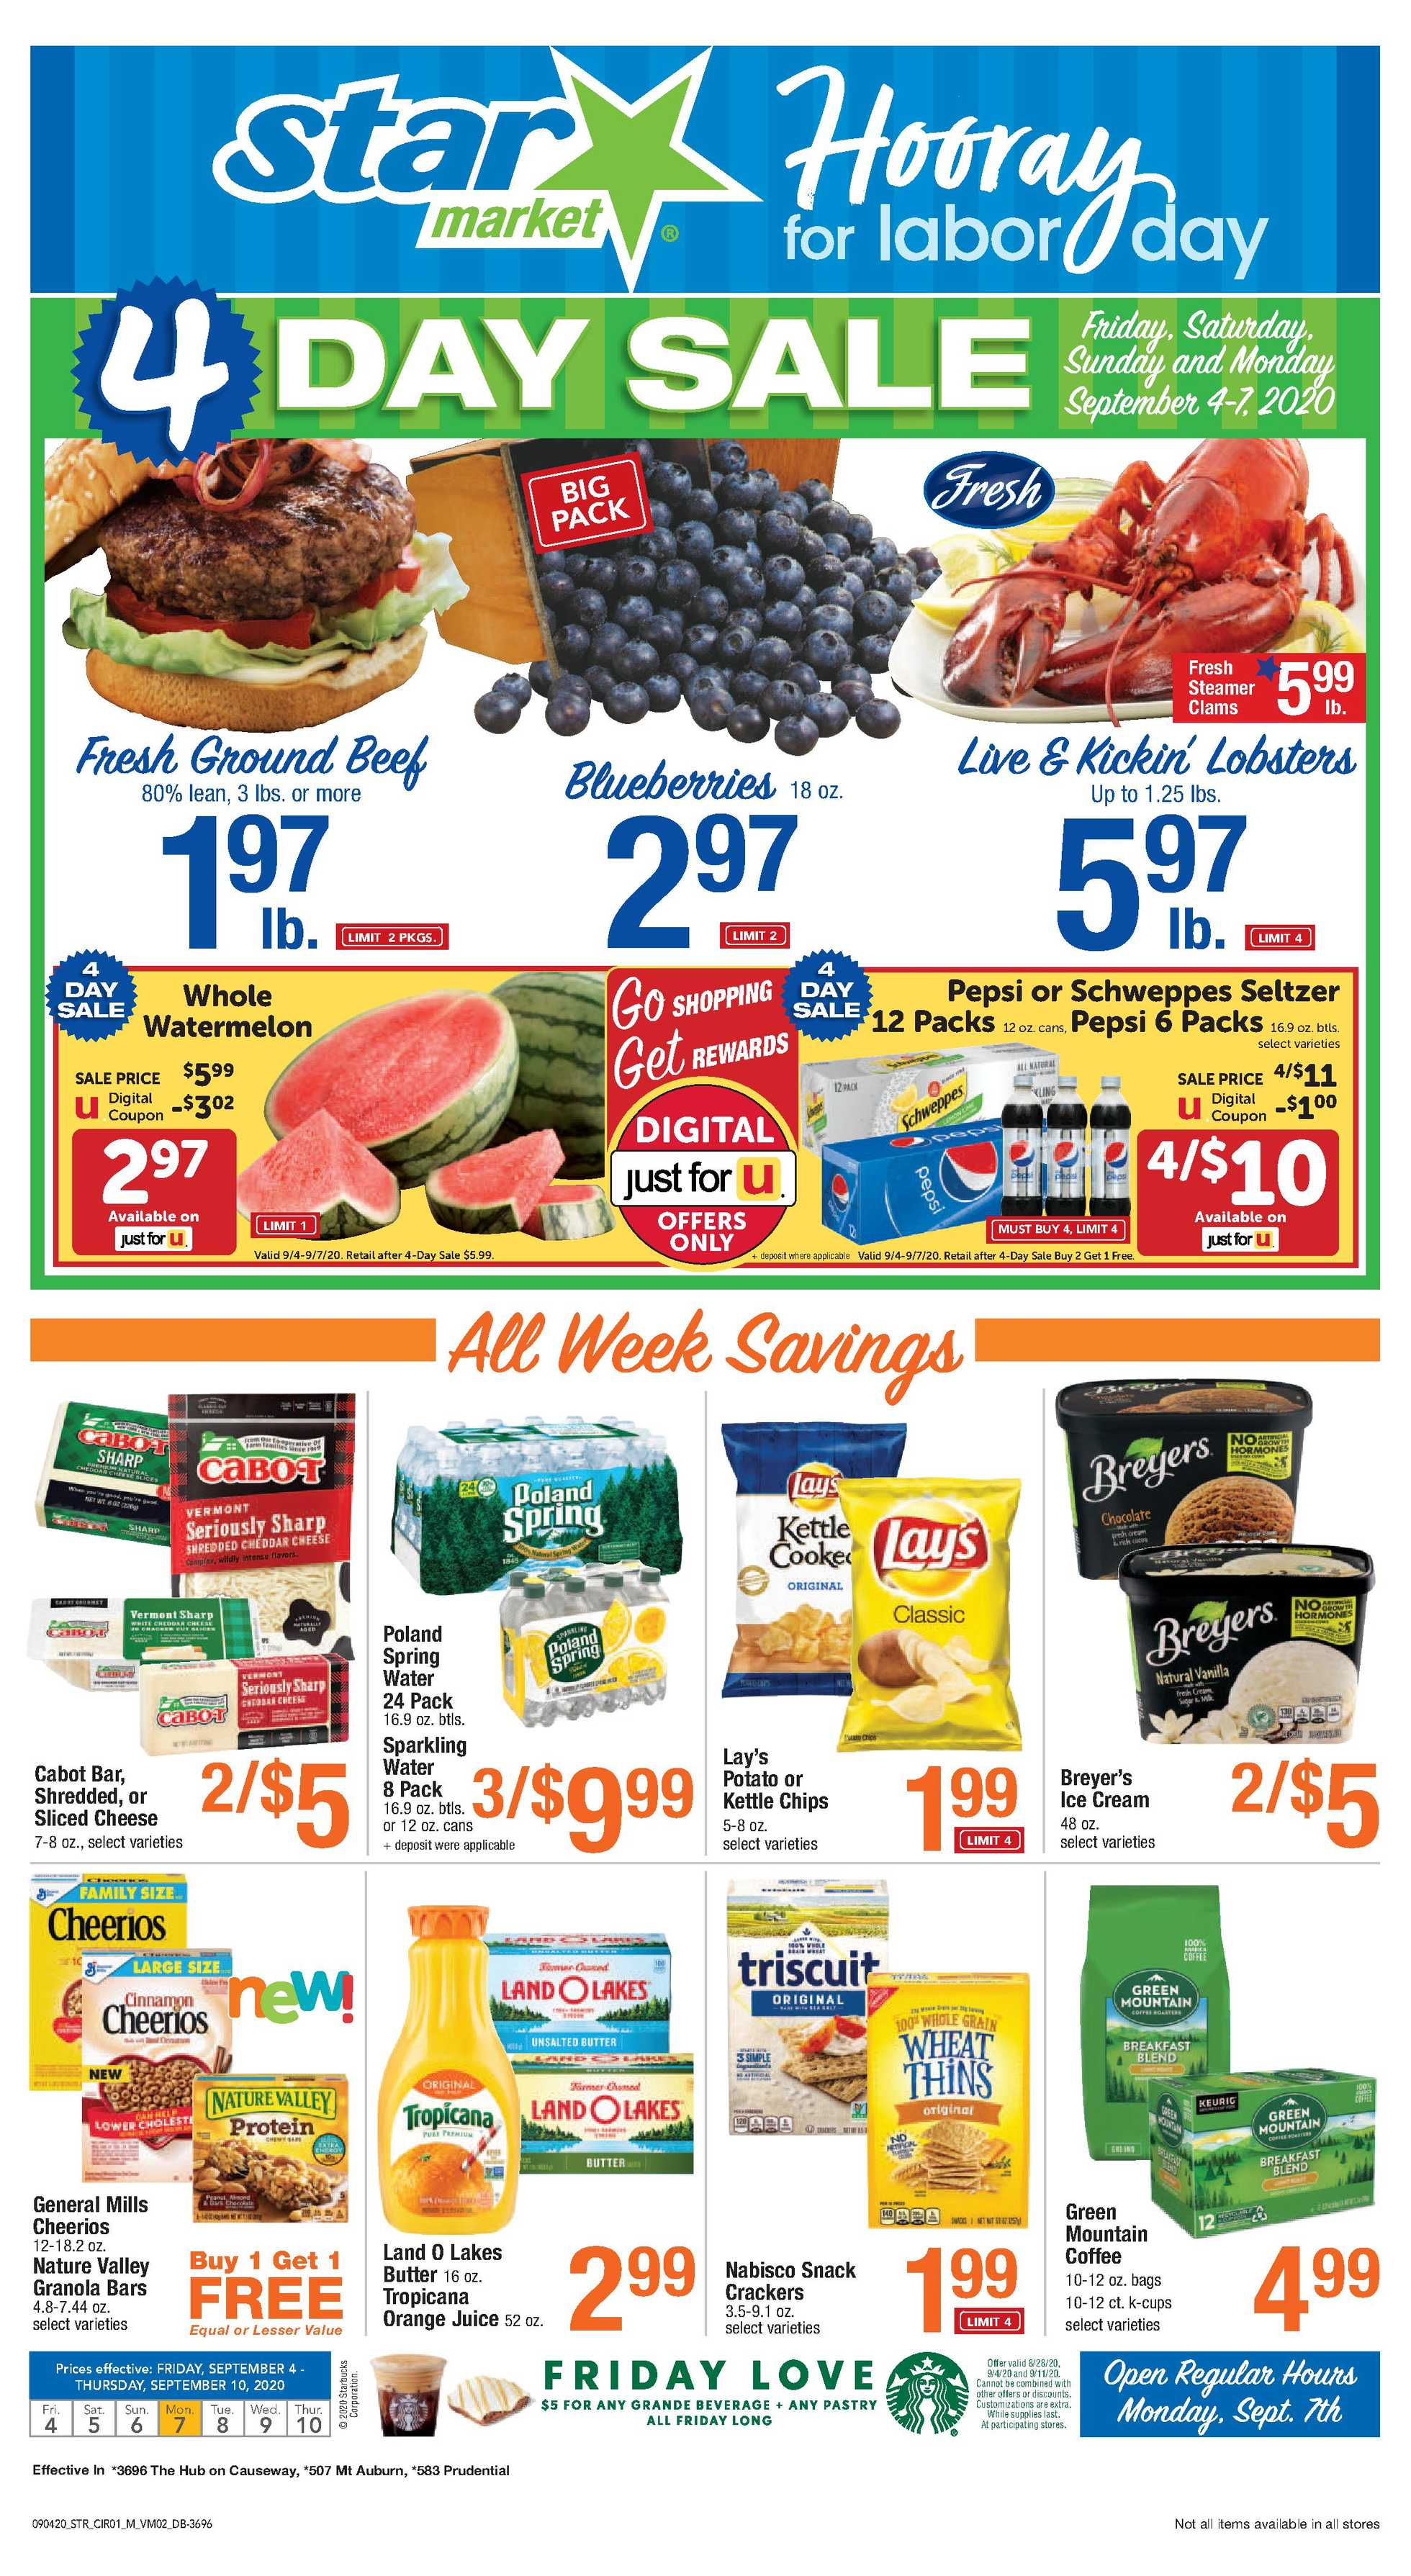 Star Market - deals are valid from 09/04/20 to 09/10/20 - page 1.